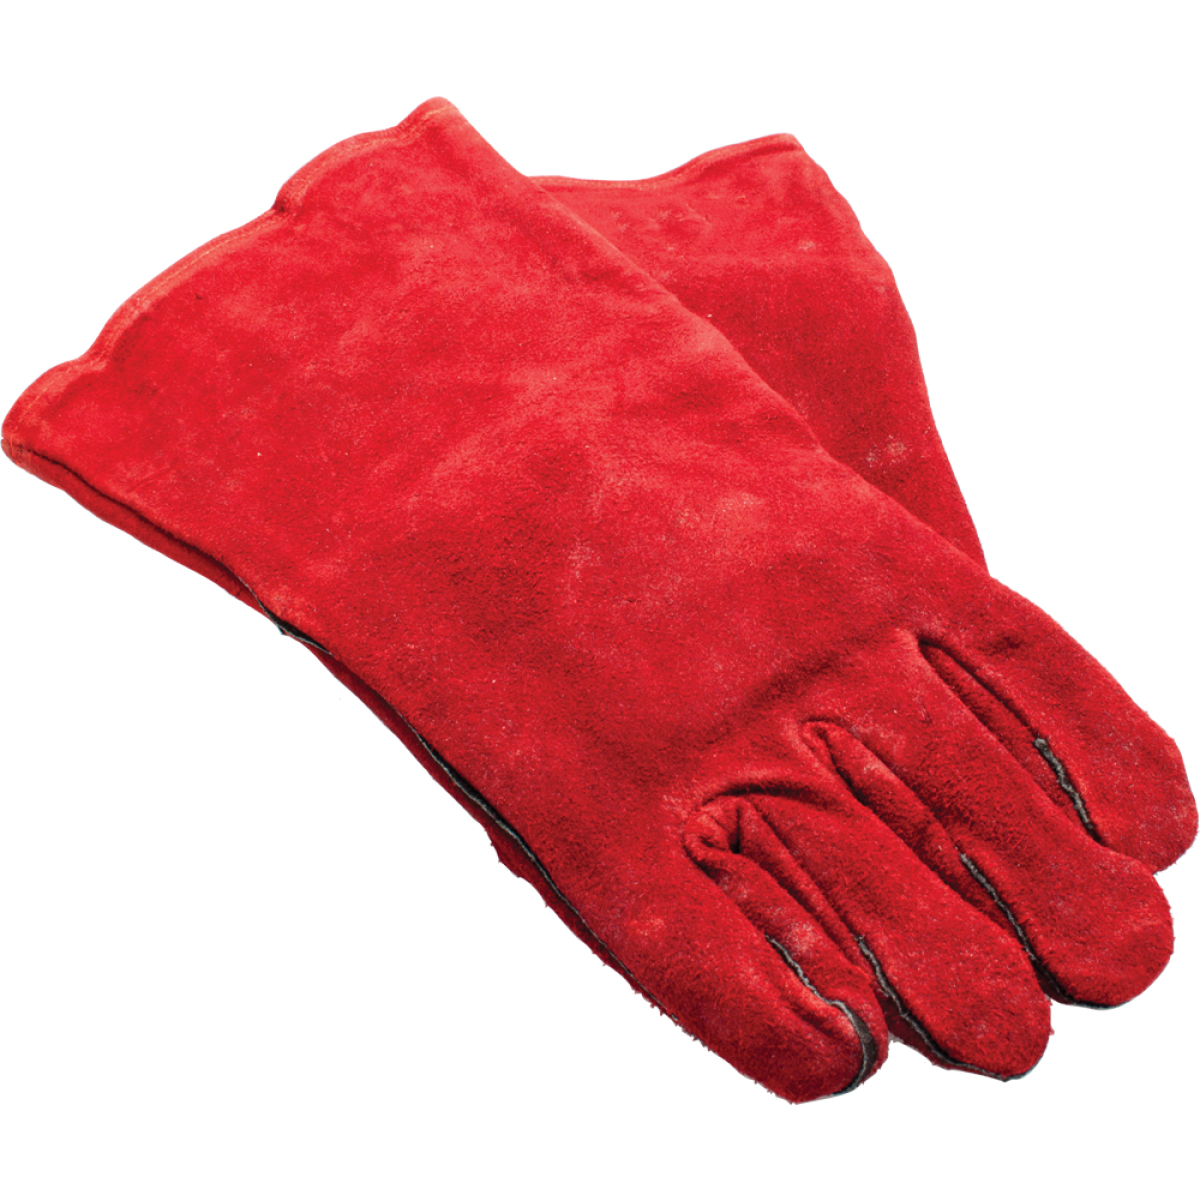 Miscellaneous – Heat Resistant Gloves